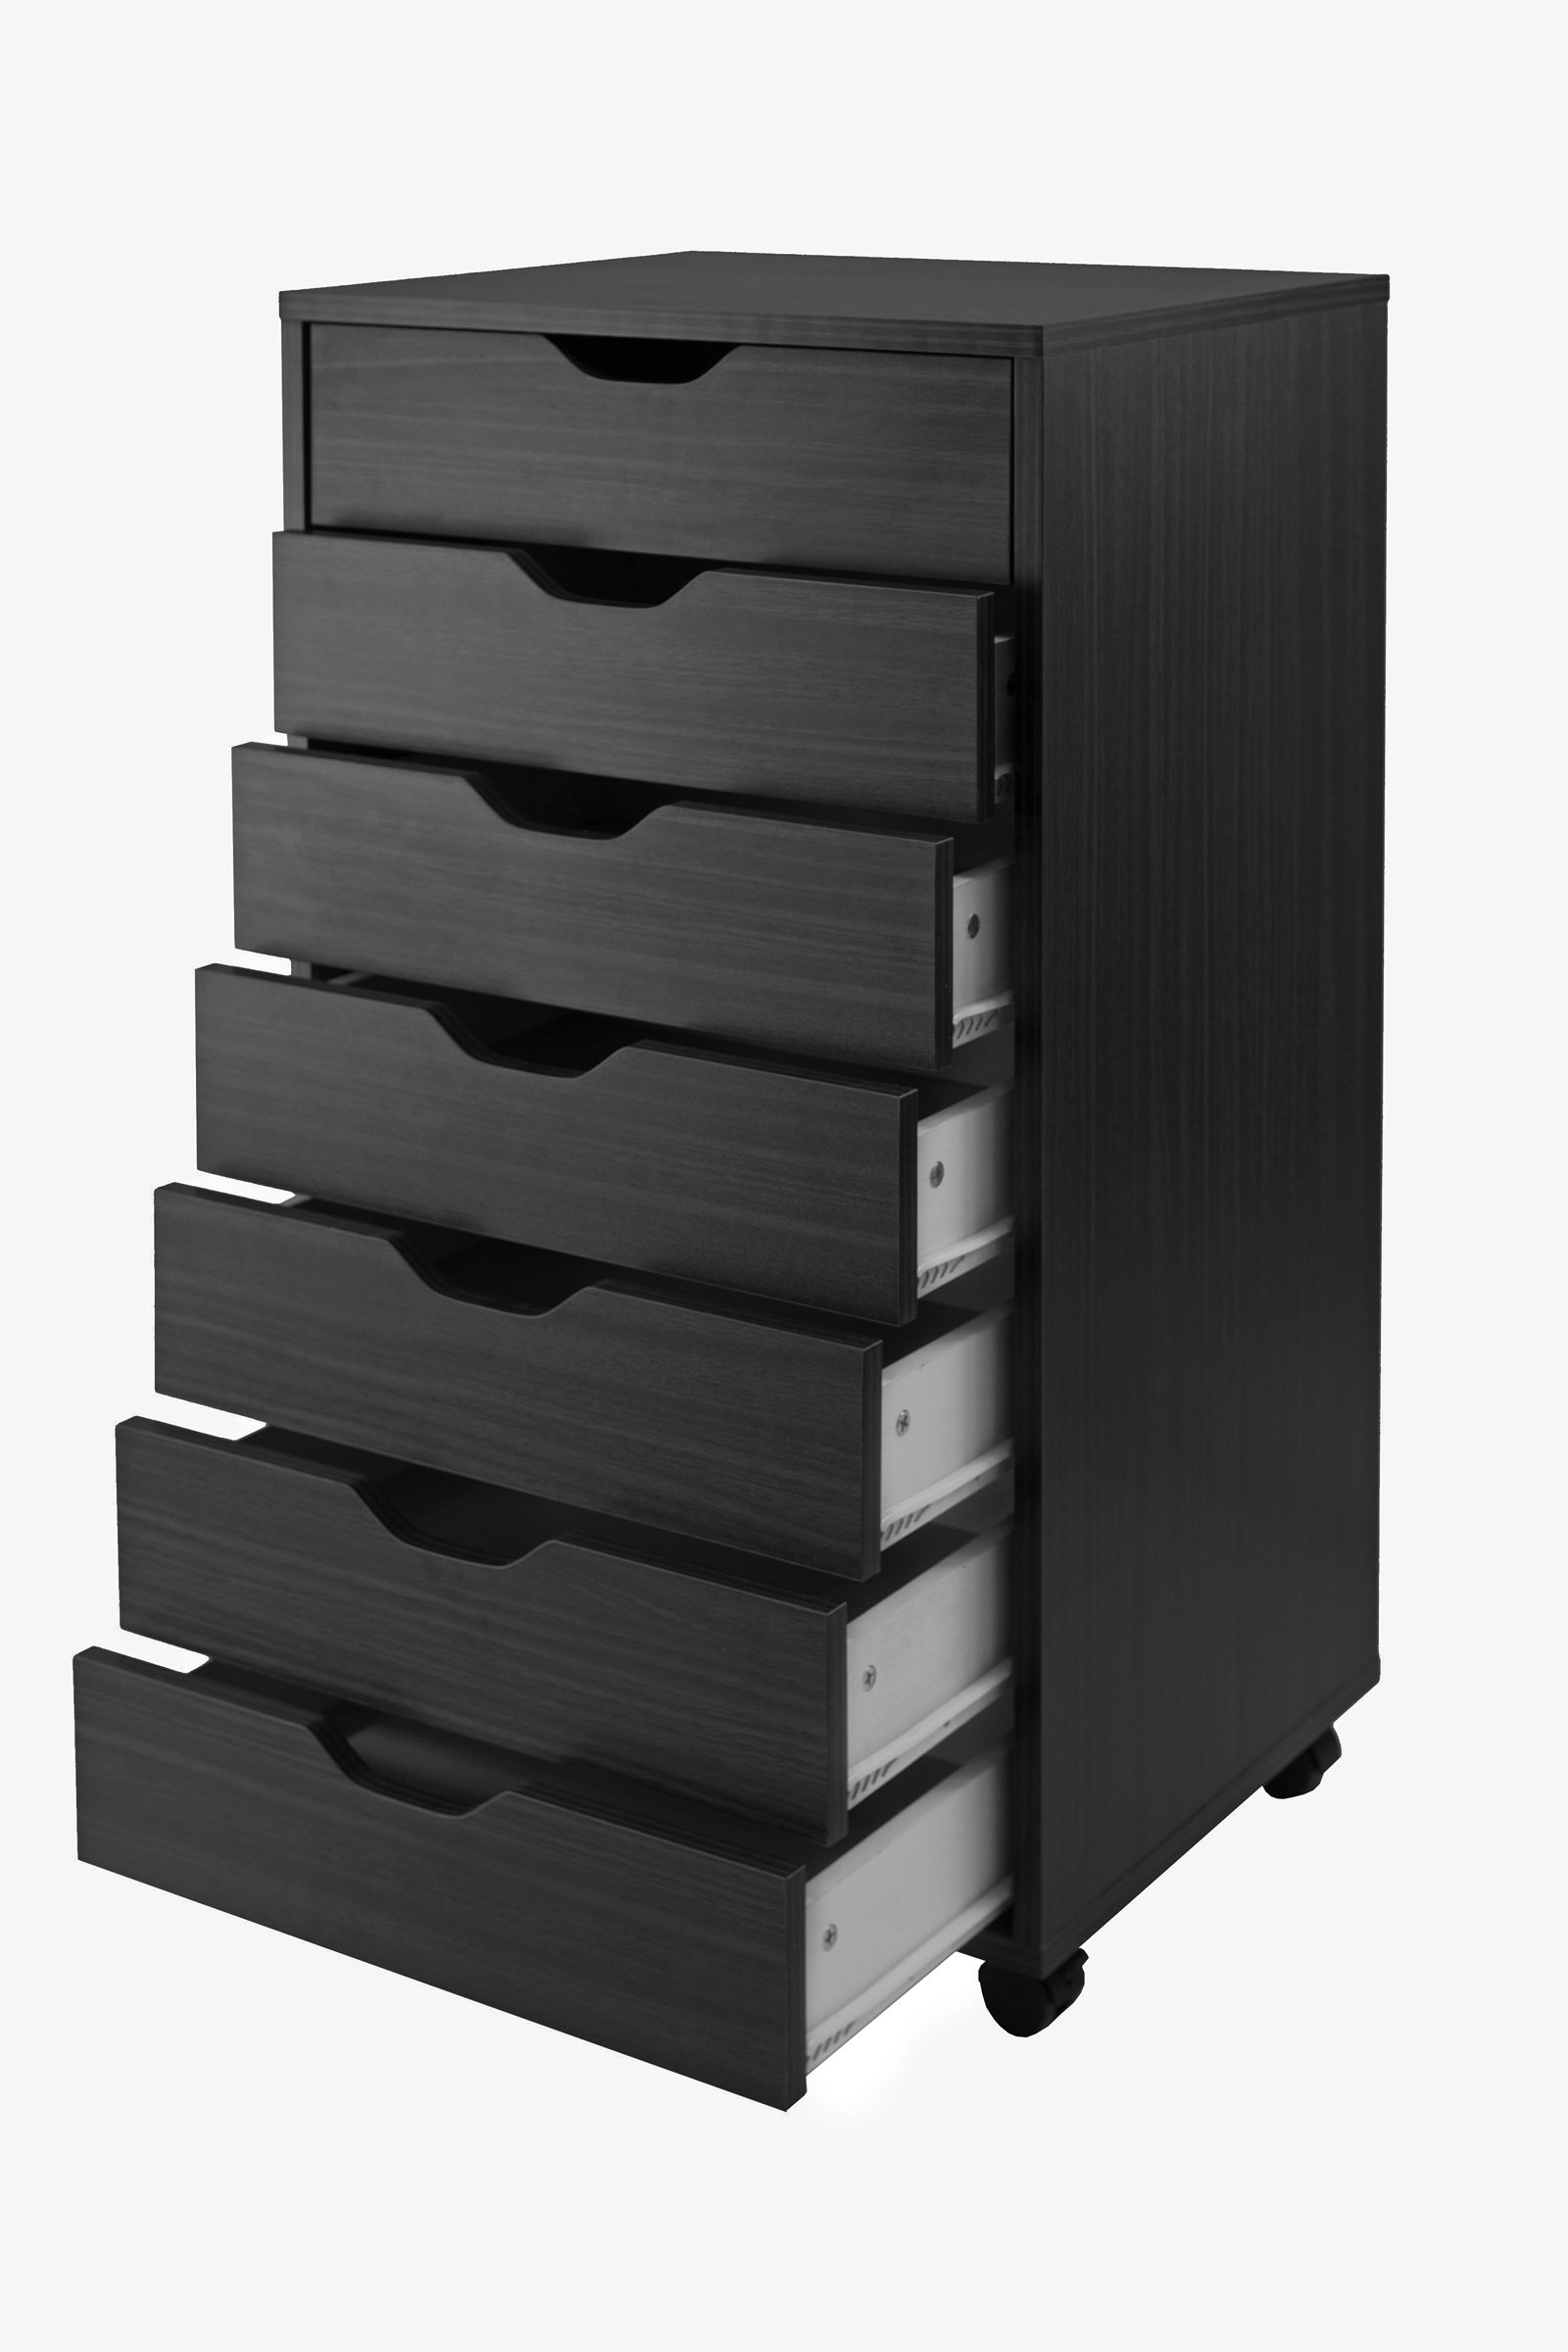 Winsome Halifax Cabinet for Closet/Office, 7 Drawers, Black by Winsome (Image #2)